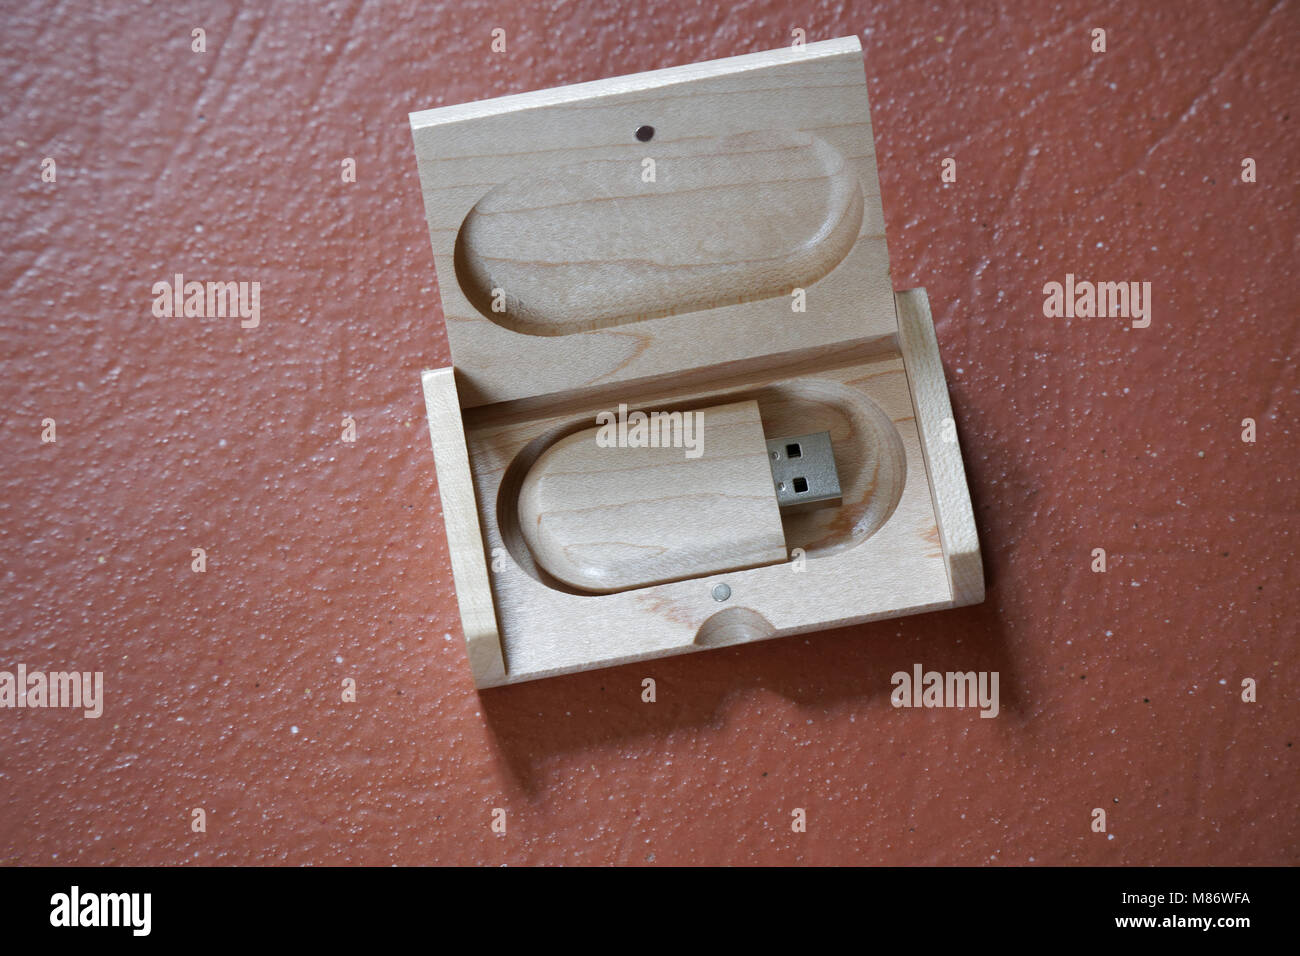 Usb flash drive with wooden surface in wooden box on desk for USB port plug-in computer laptop for transfer data - Stock Image